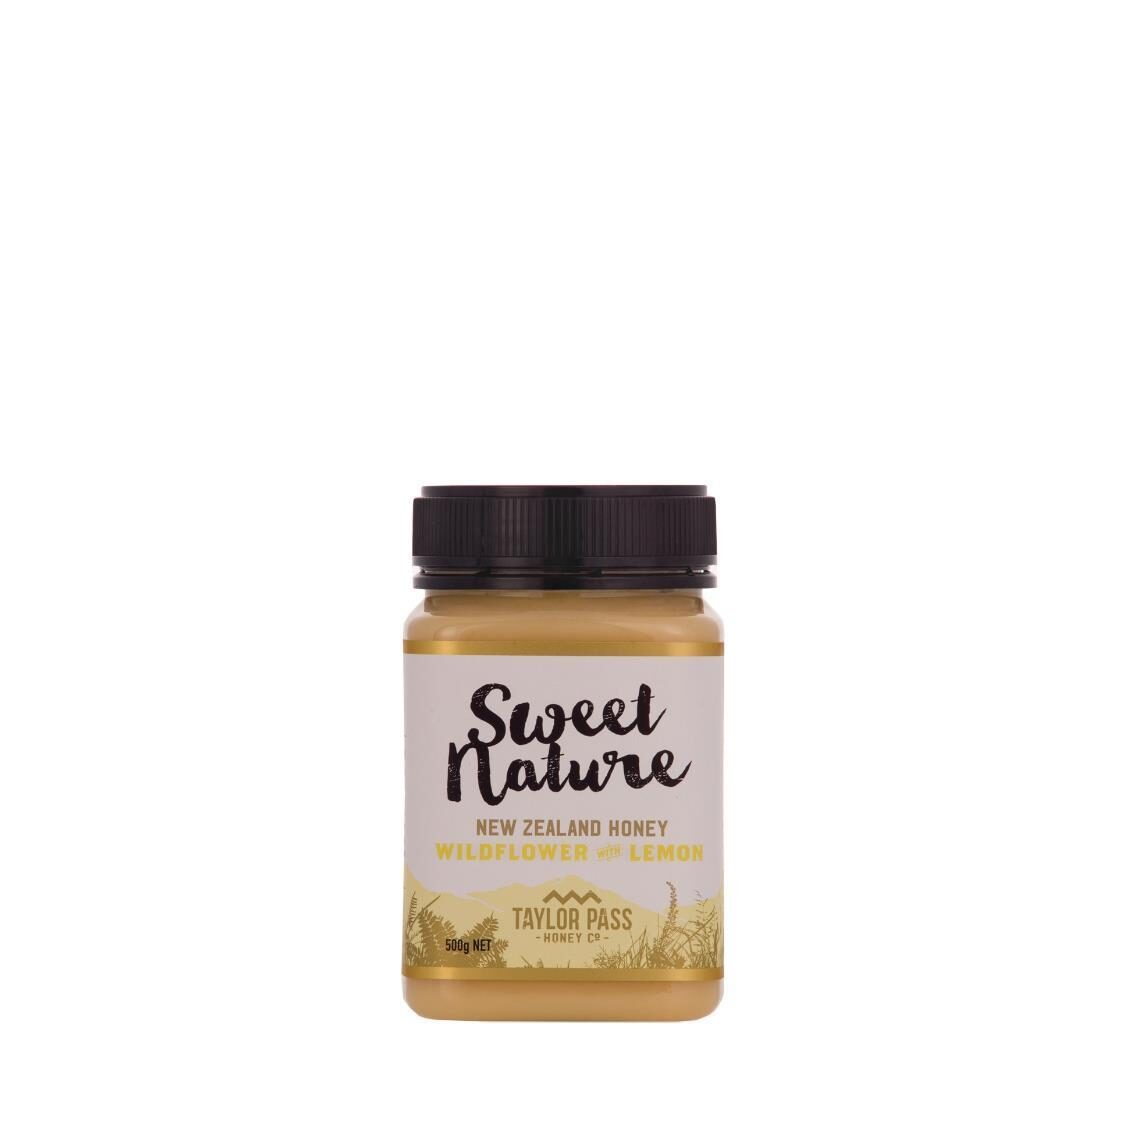 Wildflower With Lemon Honey 500g